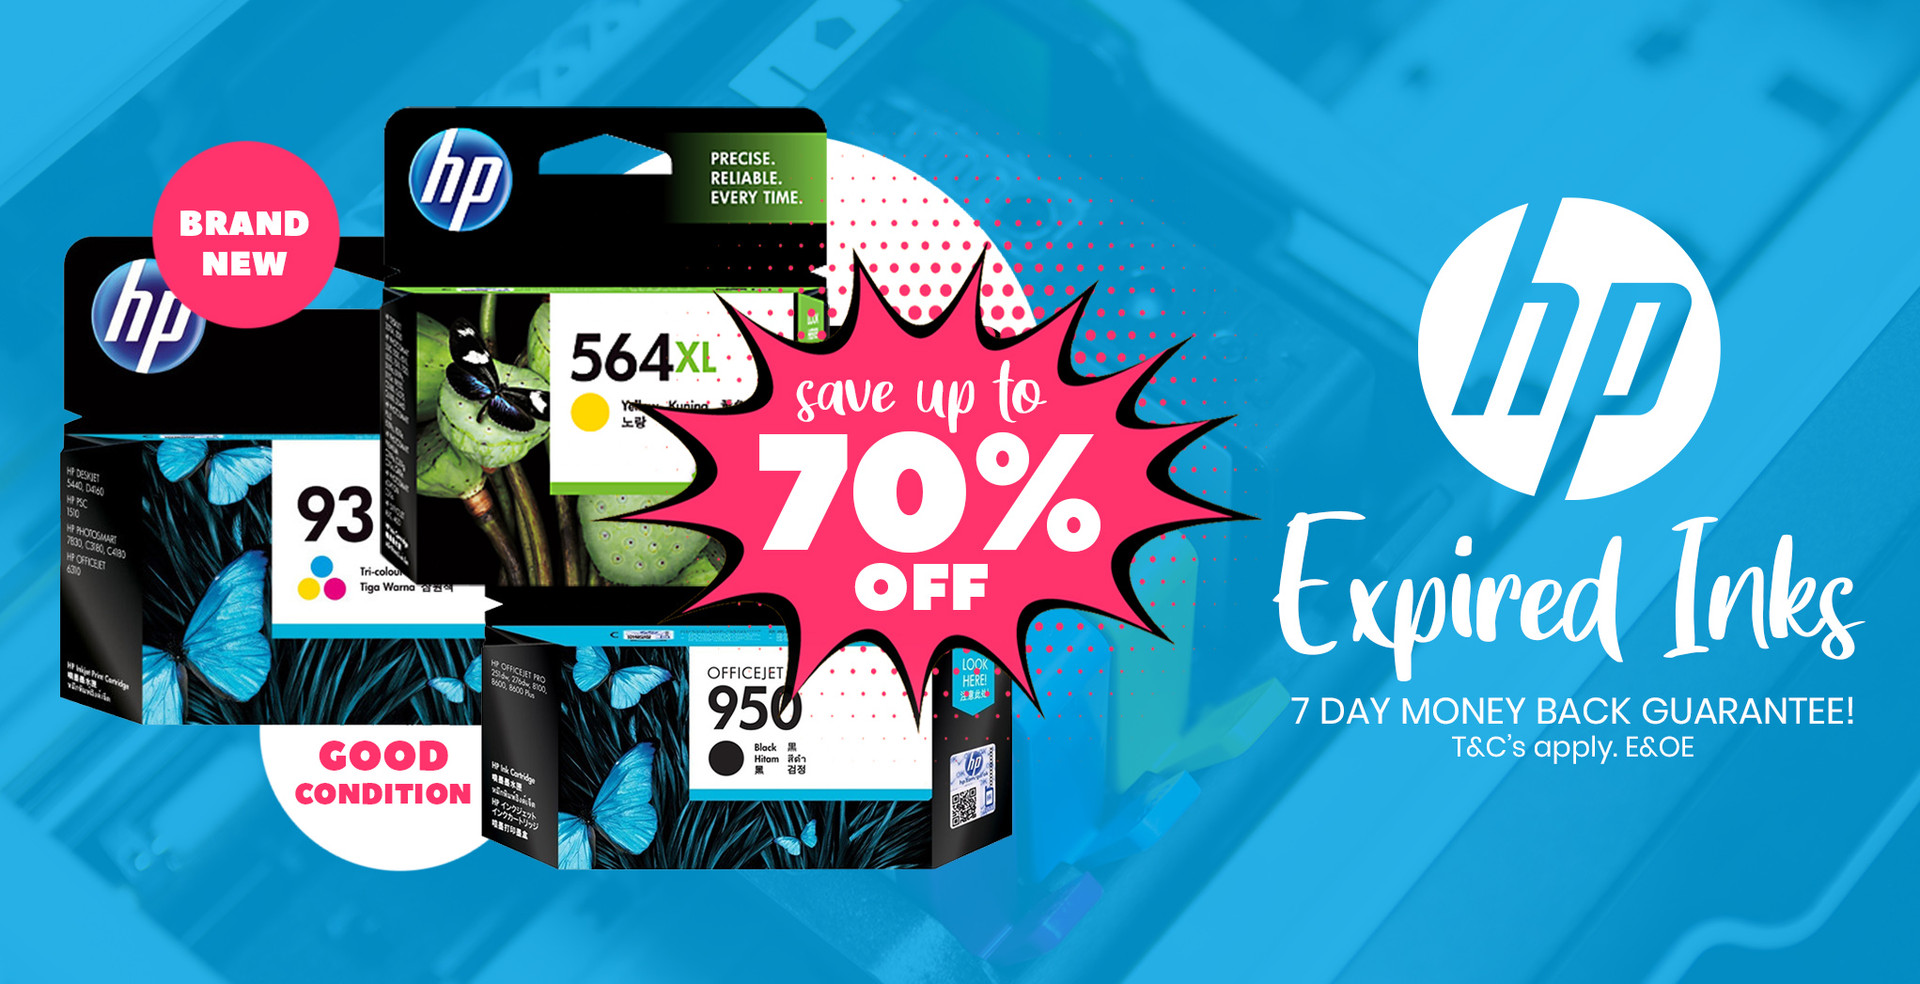 Save up to 70% on Expired HP Inks with 7 Day Money Back!